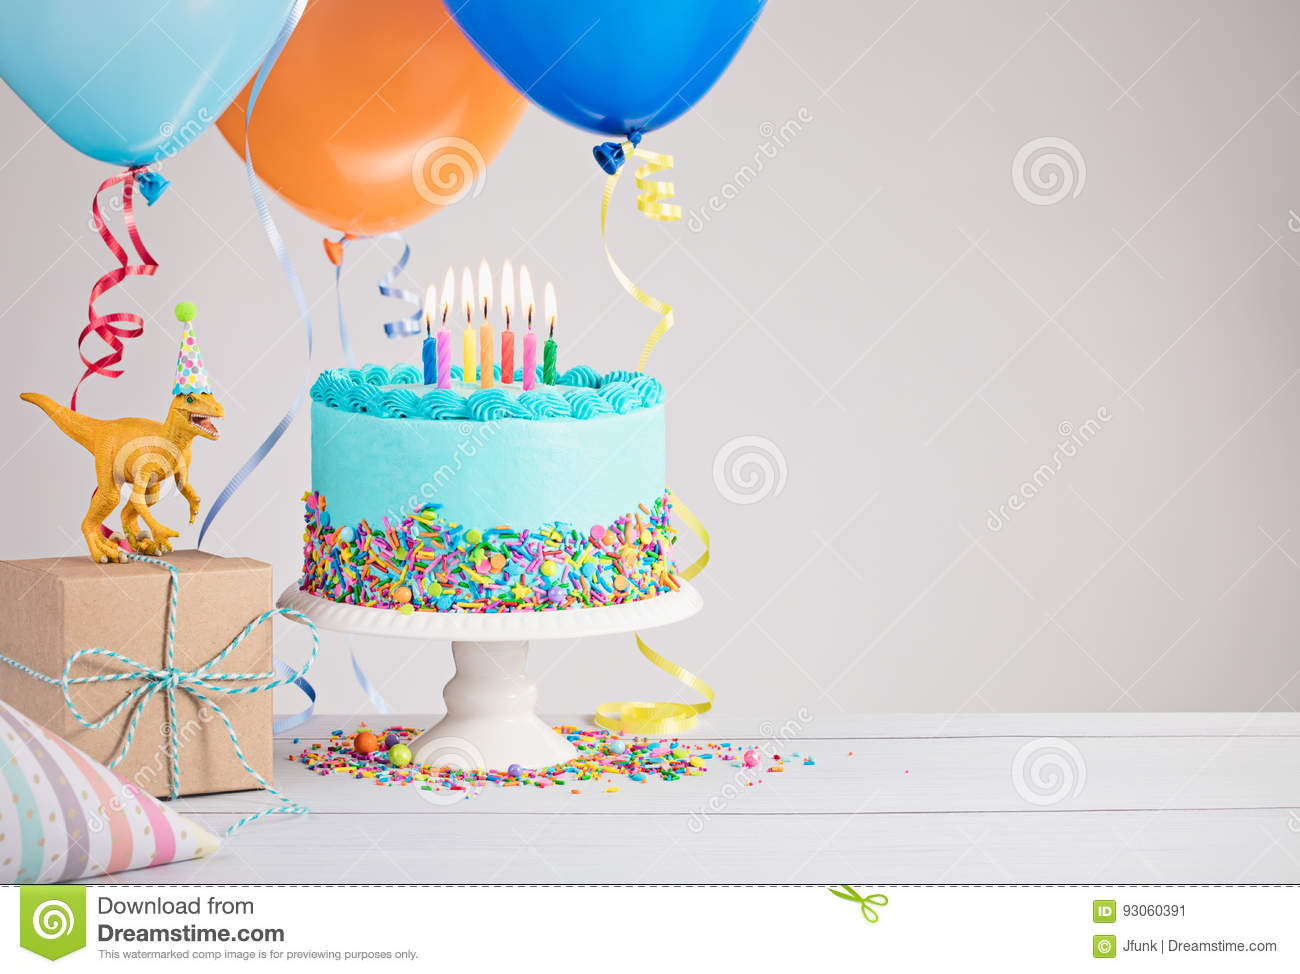 Blue Birthday Cake With Balloons